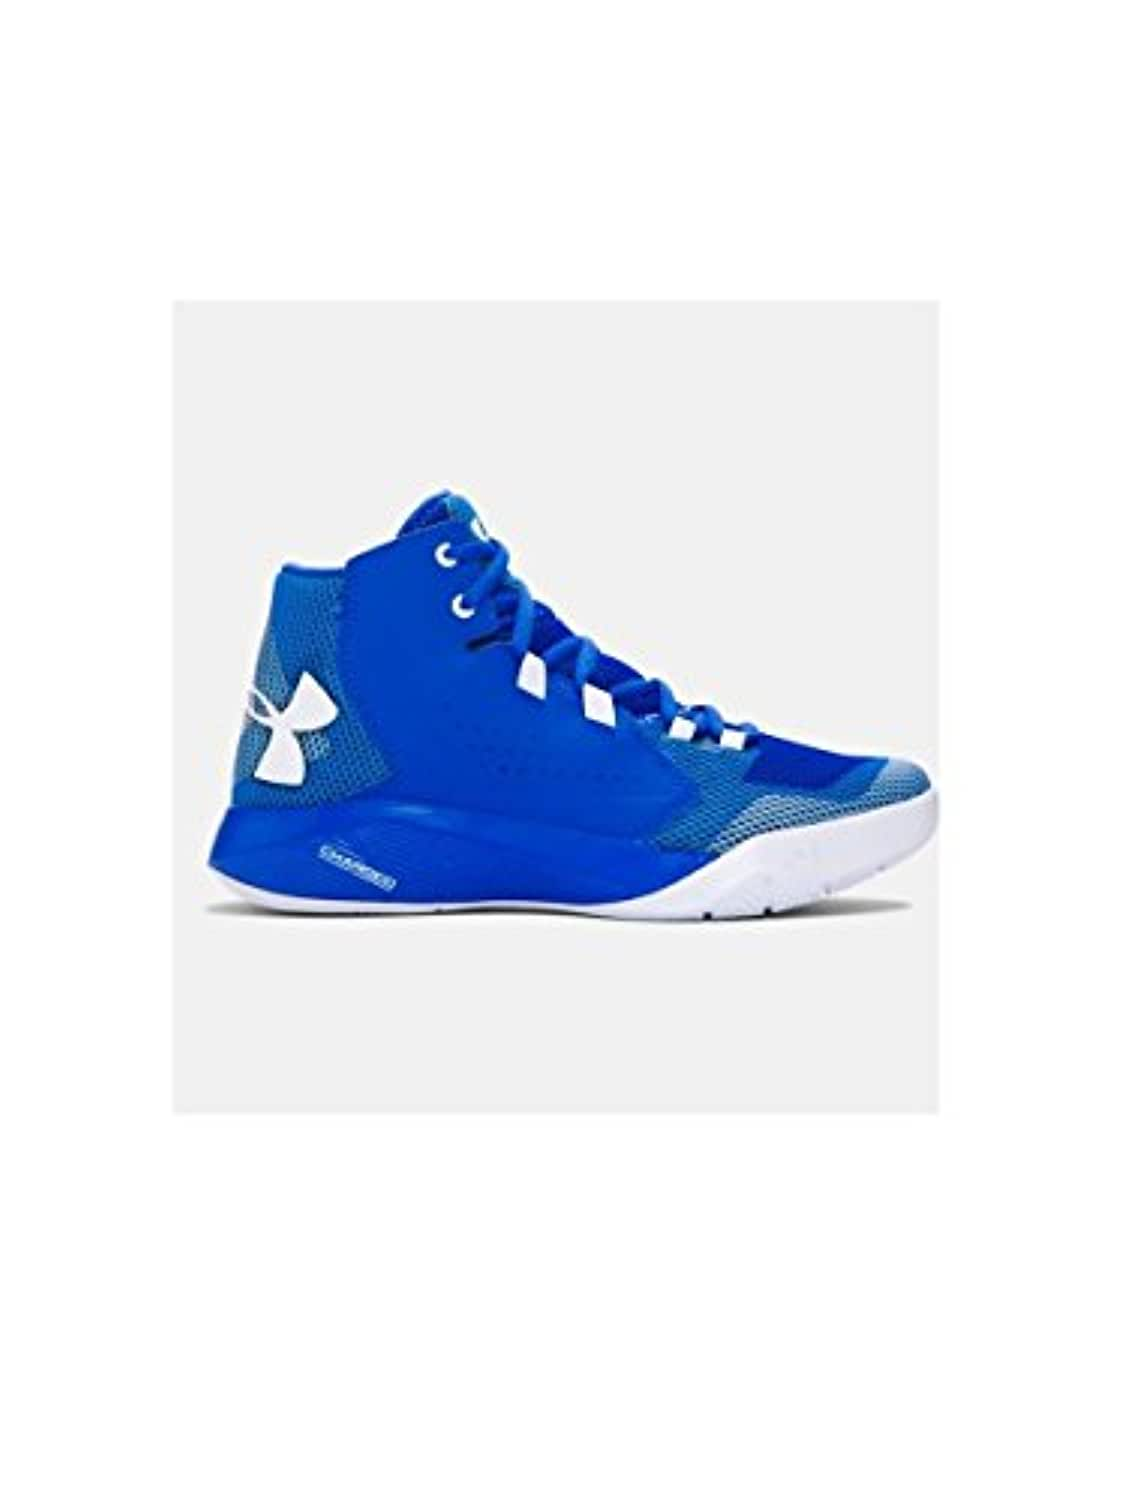 Under Armour Basketball Shoes Torch Fade Kid Art. 1274065 - 907 mainapps, baby, royal, 3.5